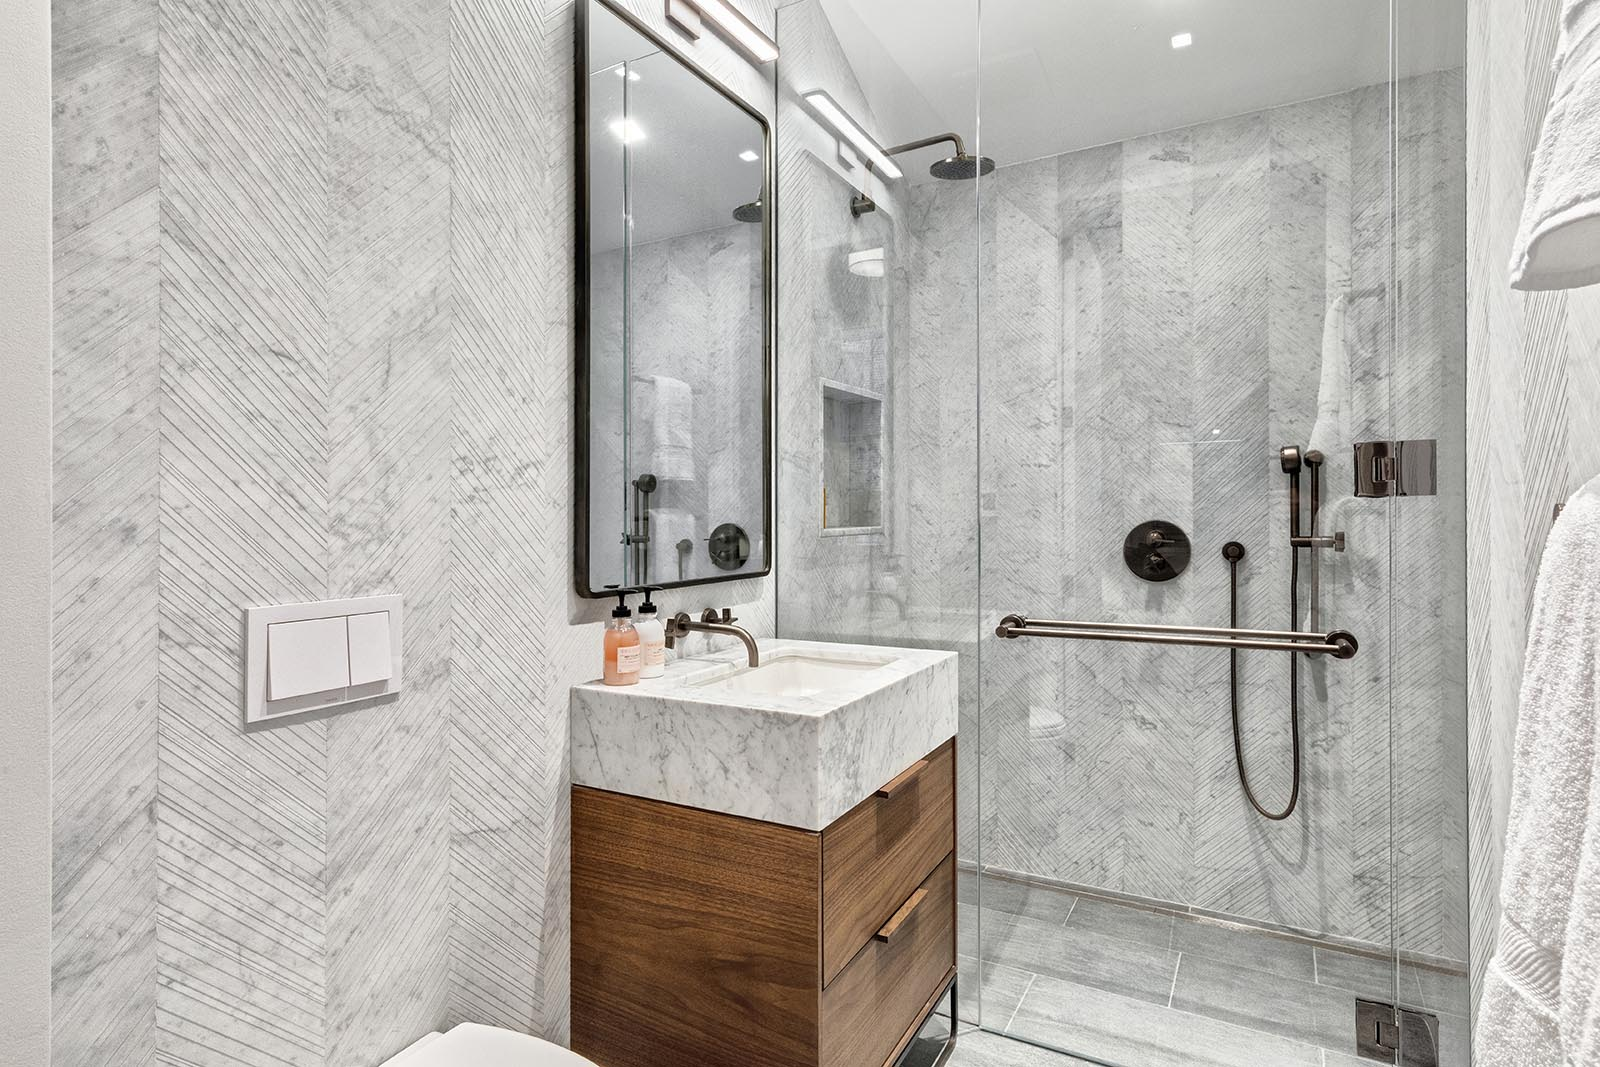 In this modern bathroom, there's floor-to-ceiling gray stone walls, a wood vanity, and a glass enclosed shower.